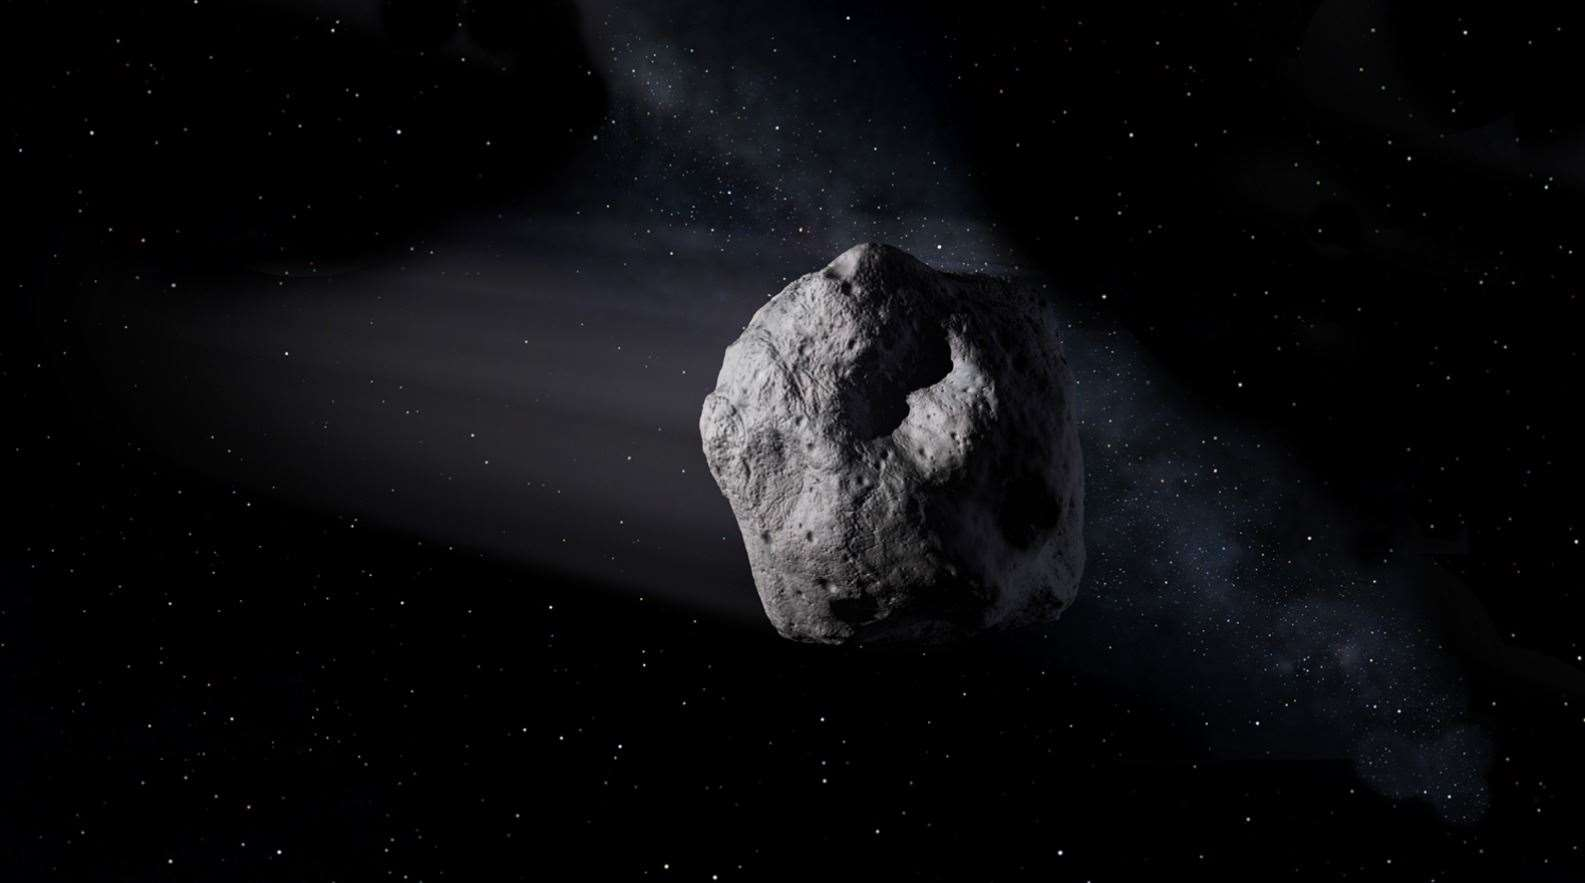 The asteroid is set to whizz past earth this week. Stock picture